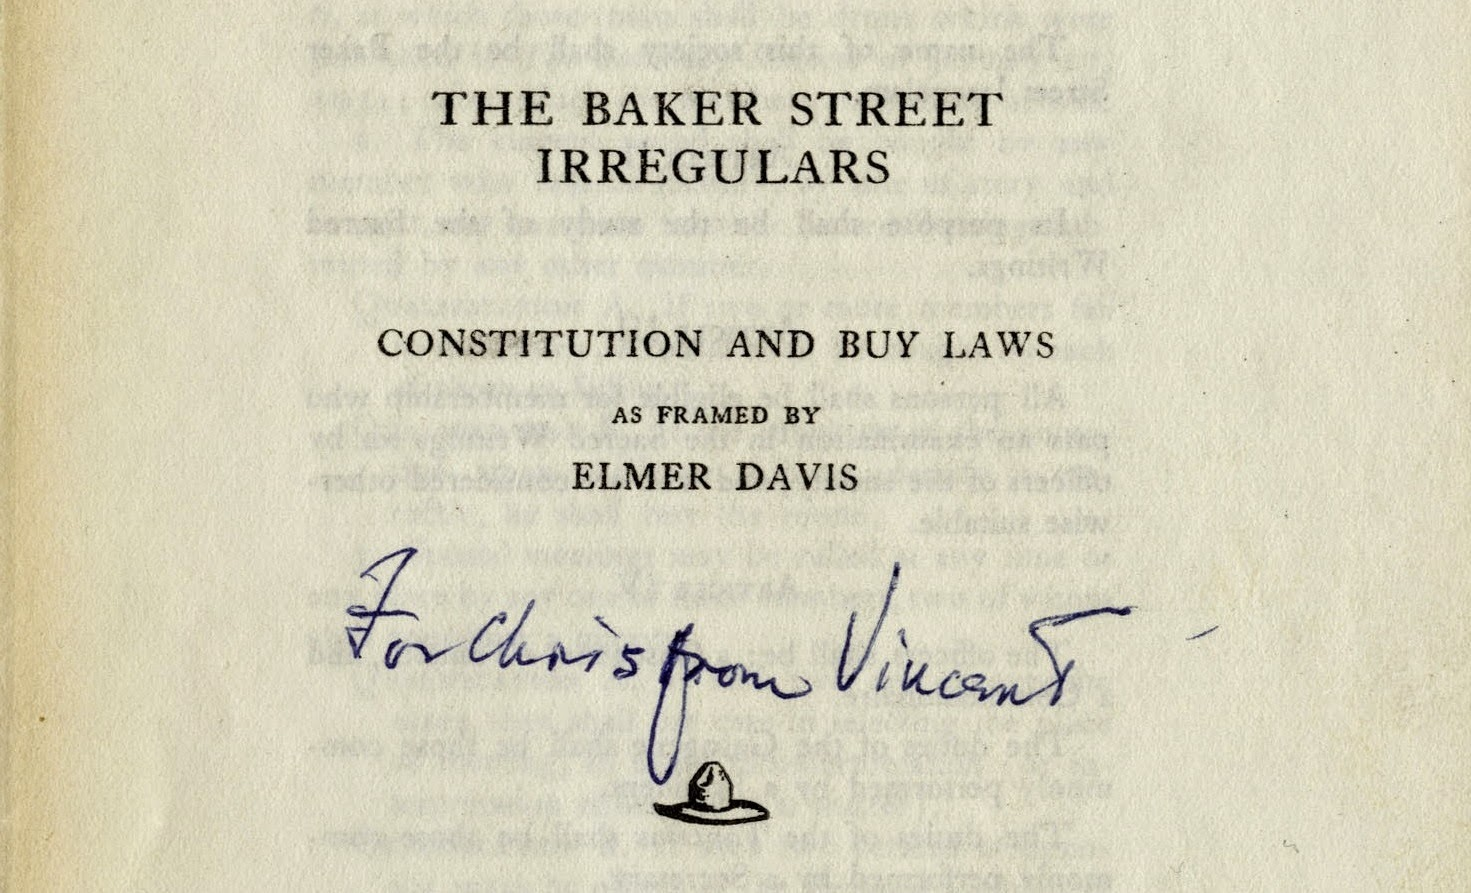 BSI Constitution and Buy Laws - inscribed to Christopher Morley from Vincent Starrett